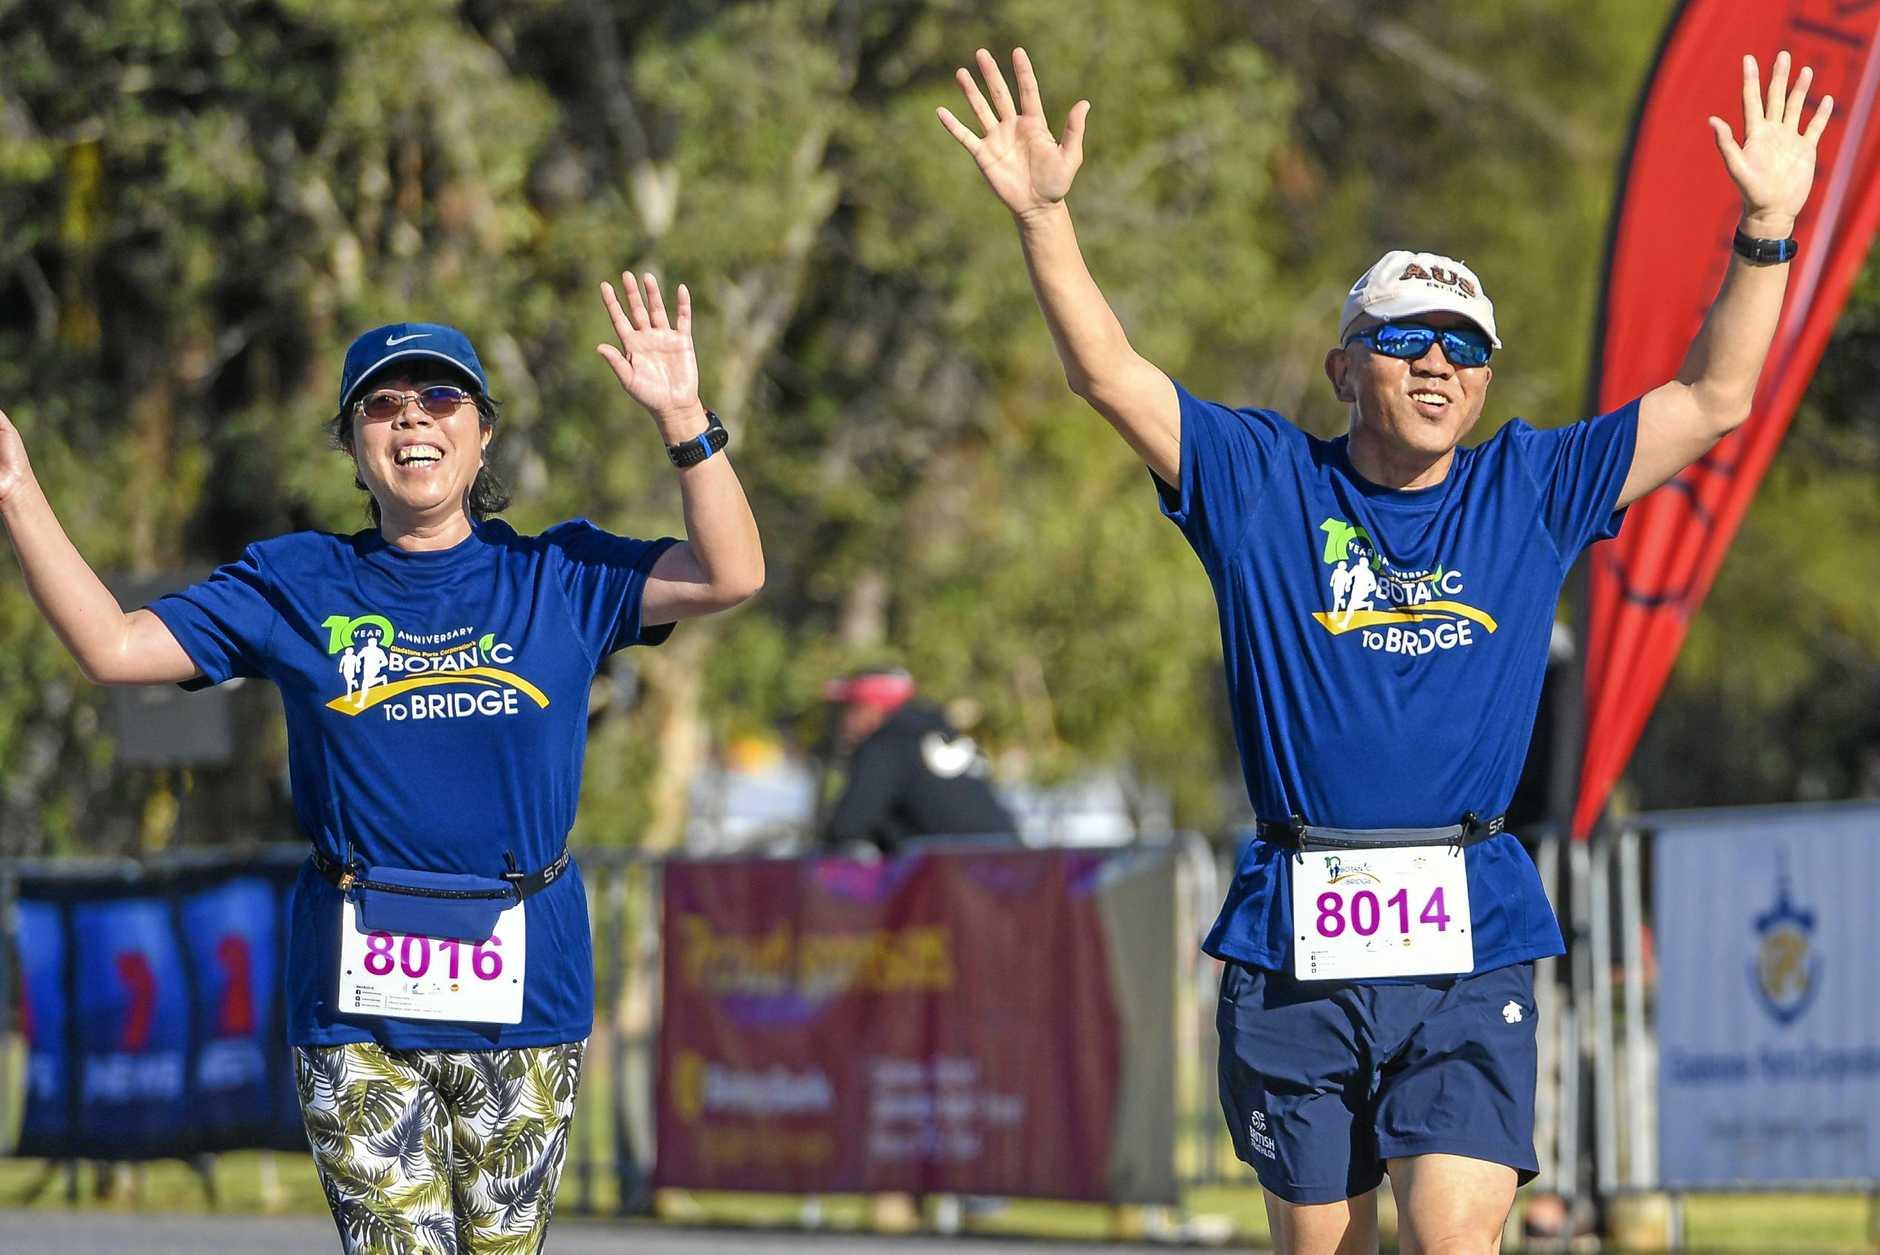 The running of the tenth Gladstone Botanic To Bridge fun run at the Gladstone Marina Parklands.